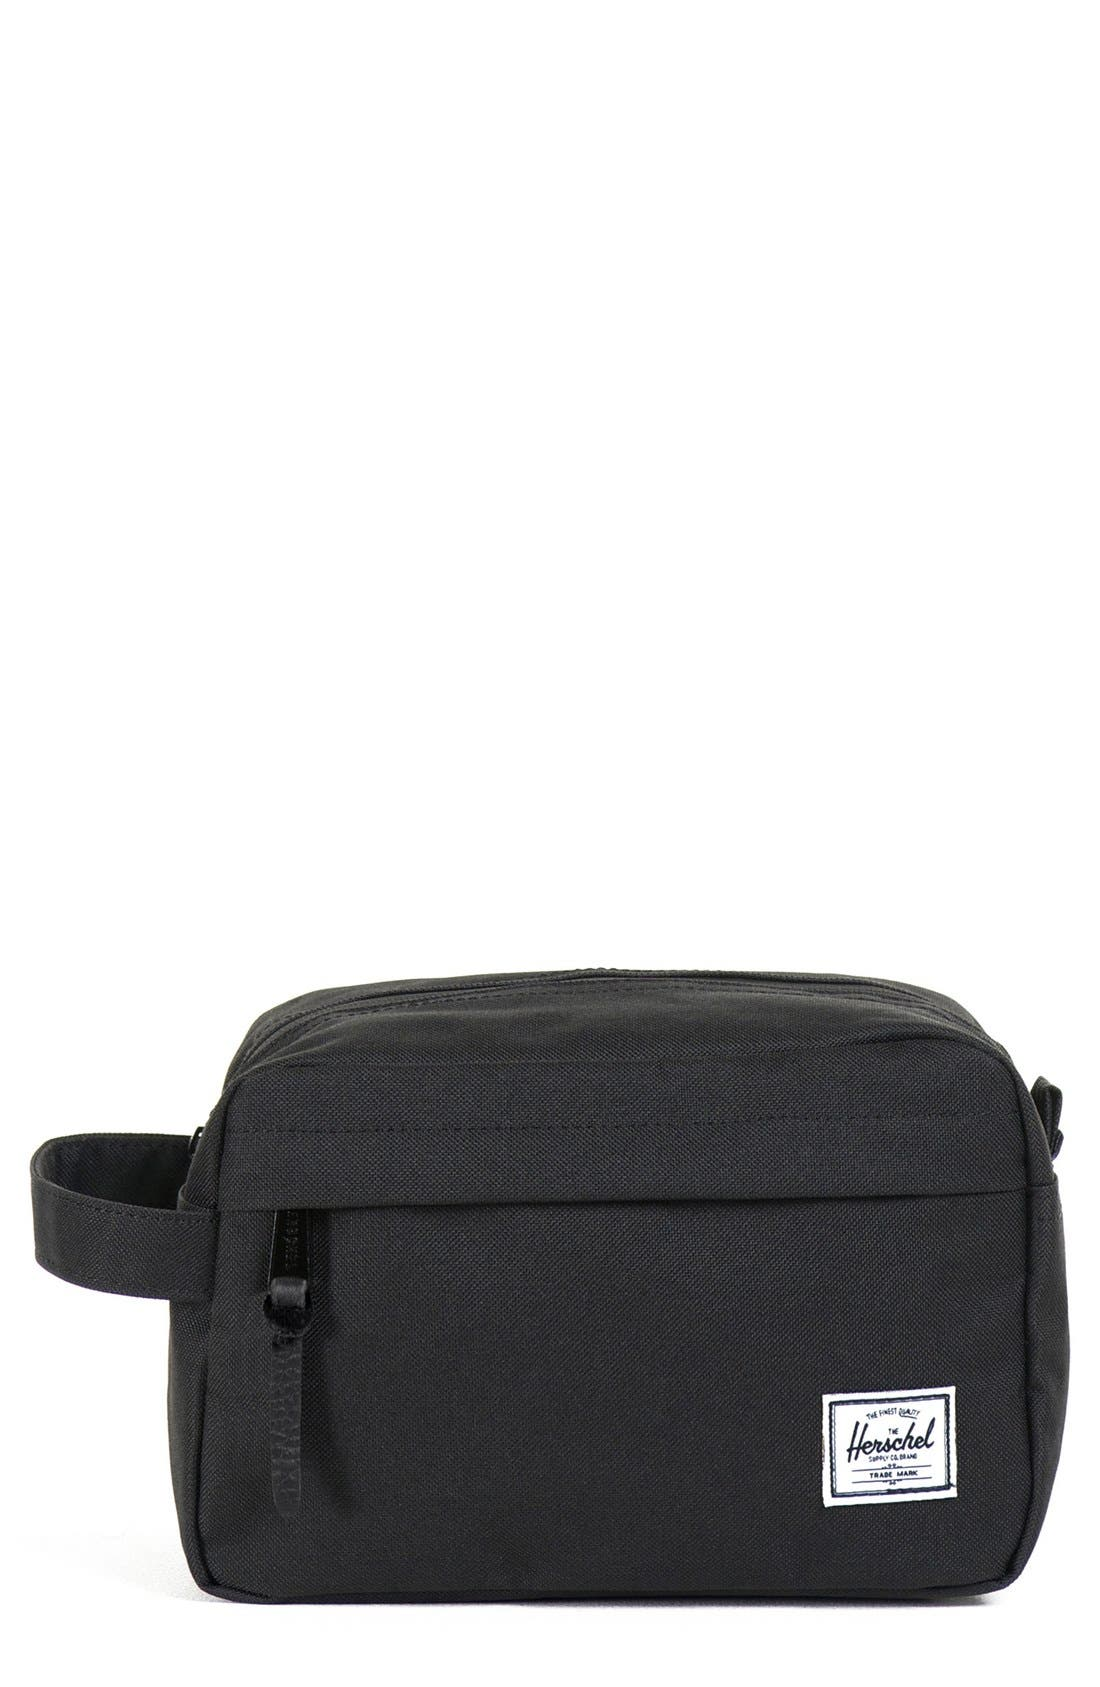 HERSCHEL SUPPLY CO. Travel Collection Chapter Toiletry Bag in Black